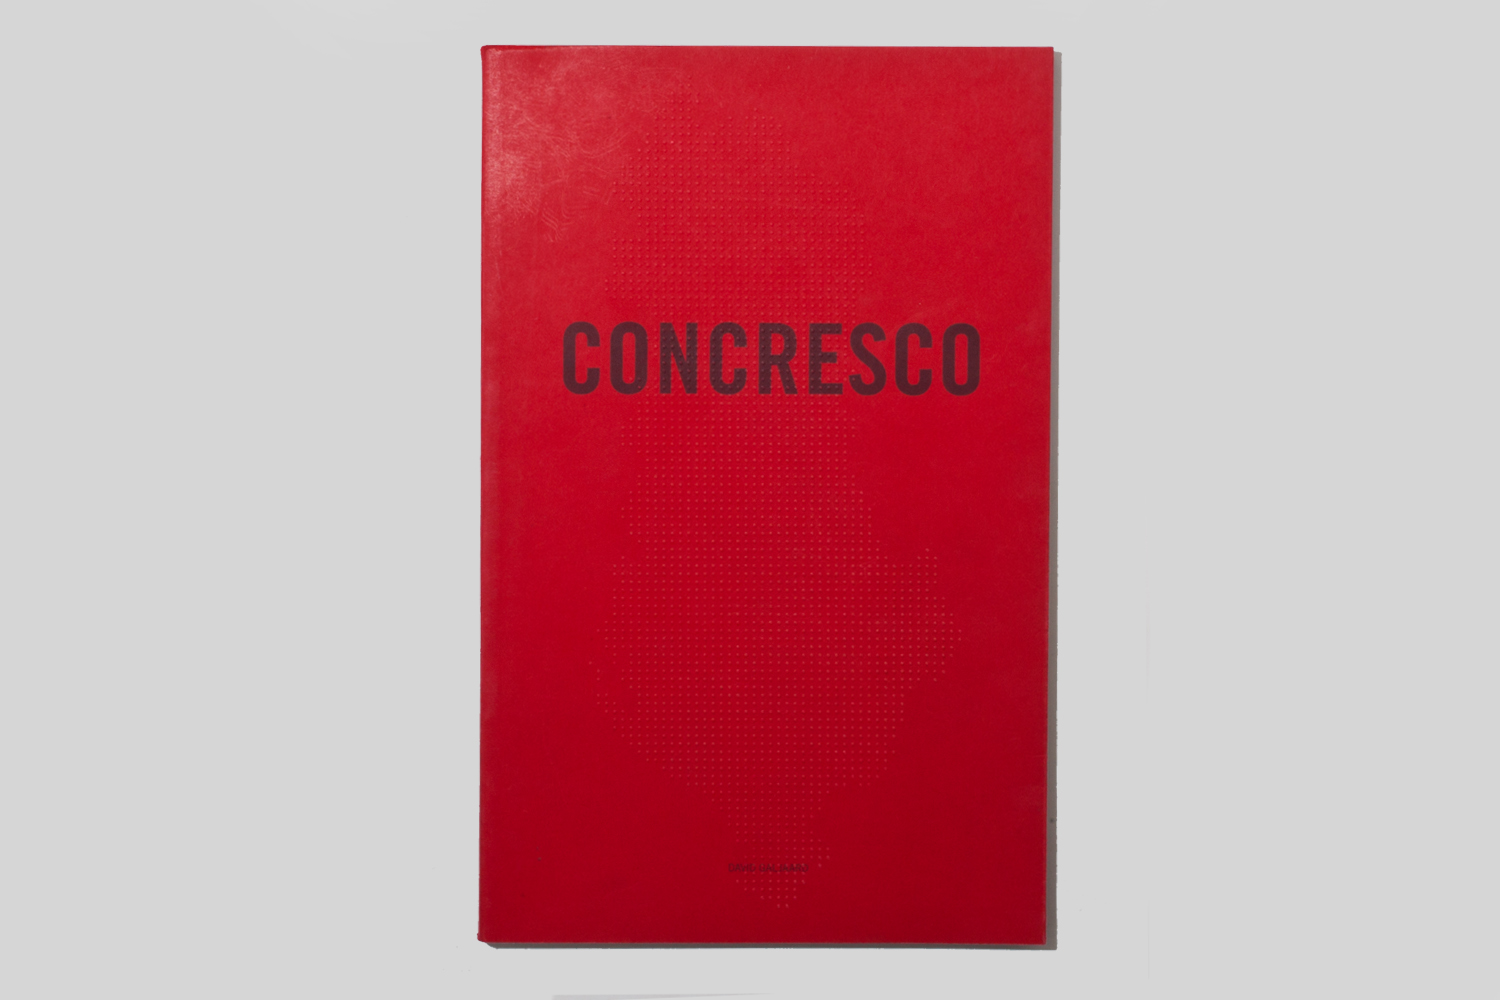 Concresco by David Galjaard, selected by Larissa Leclair, founder of the Indie Photobook Library